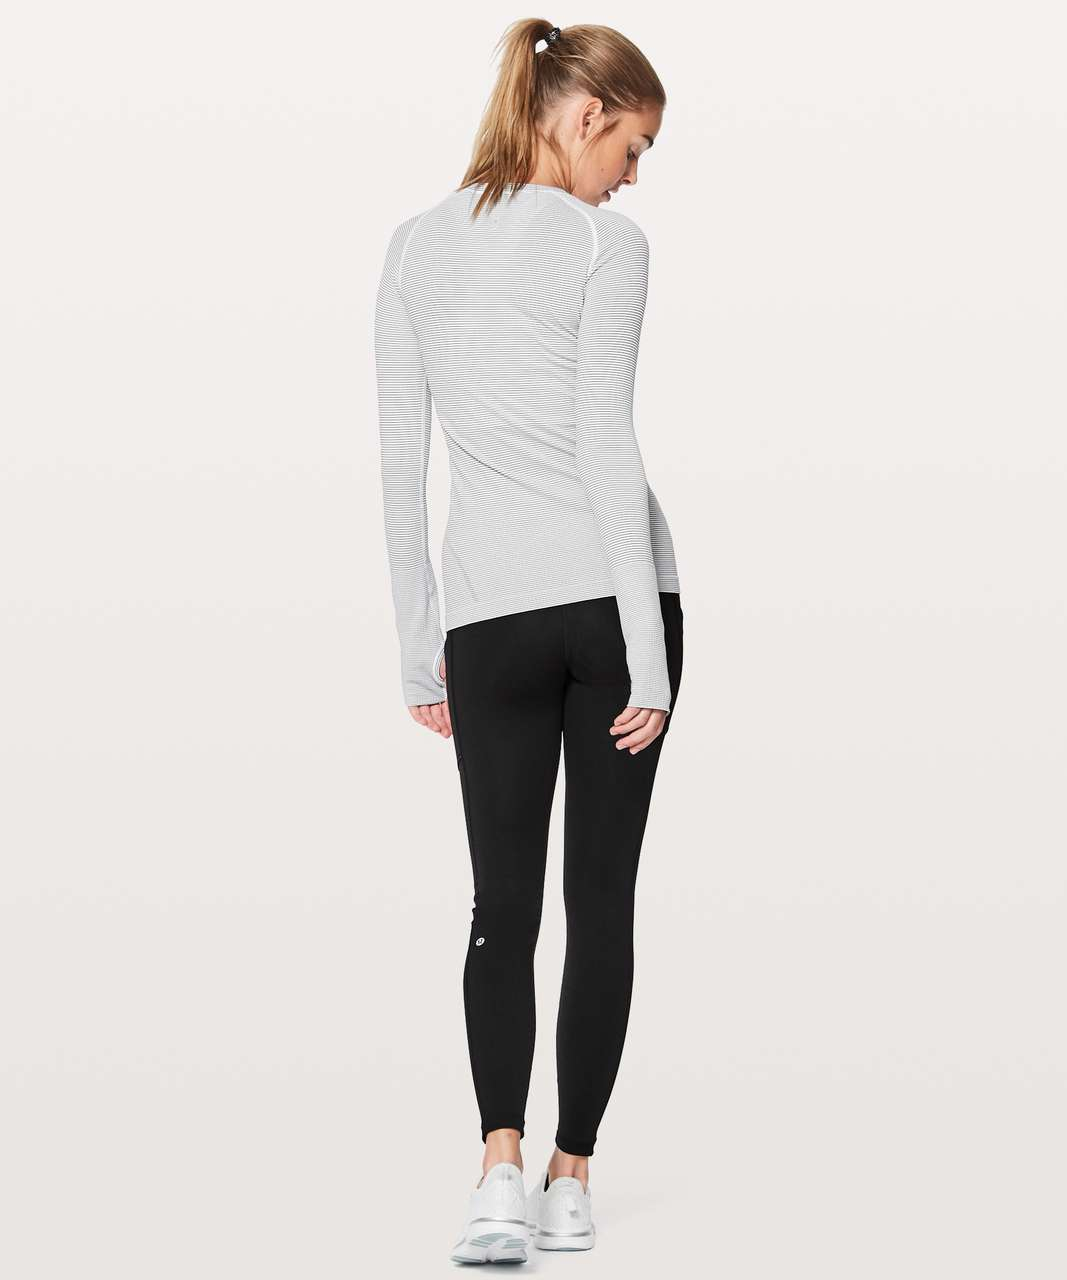 Lululemon Swiftly Tech Long Sleeve Crew - White / White / Black